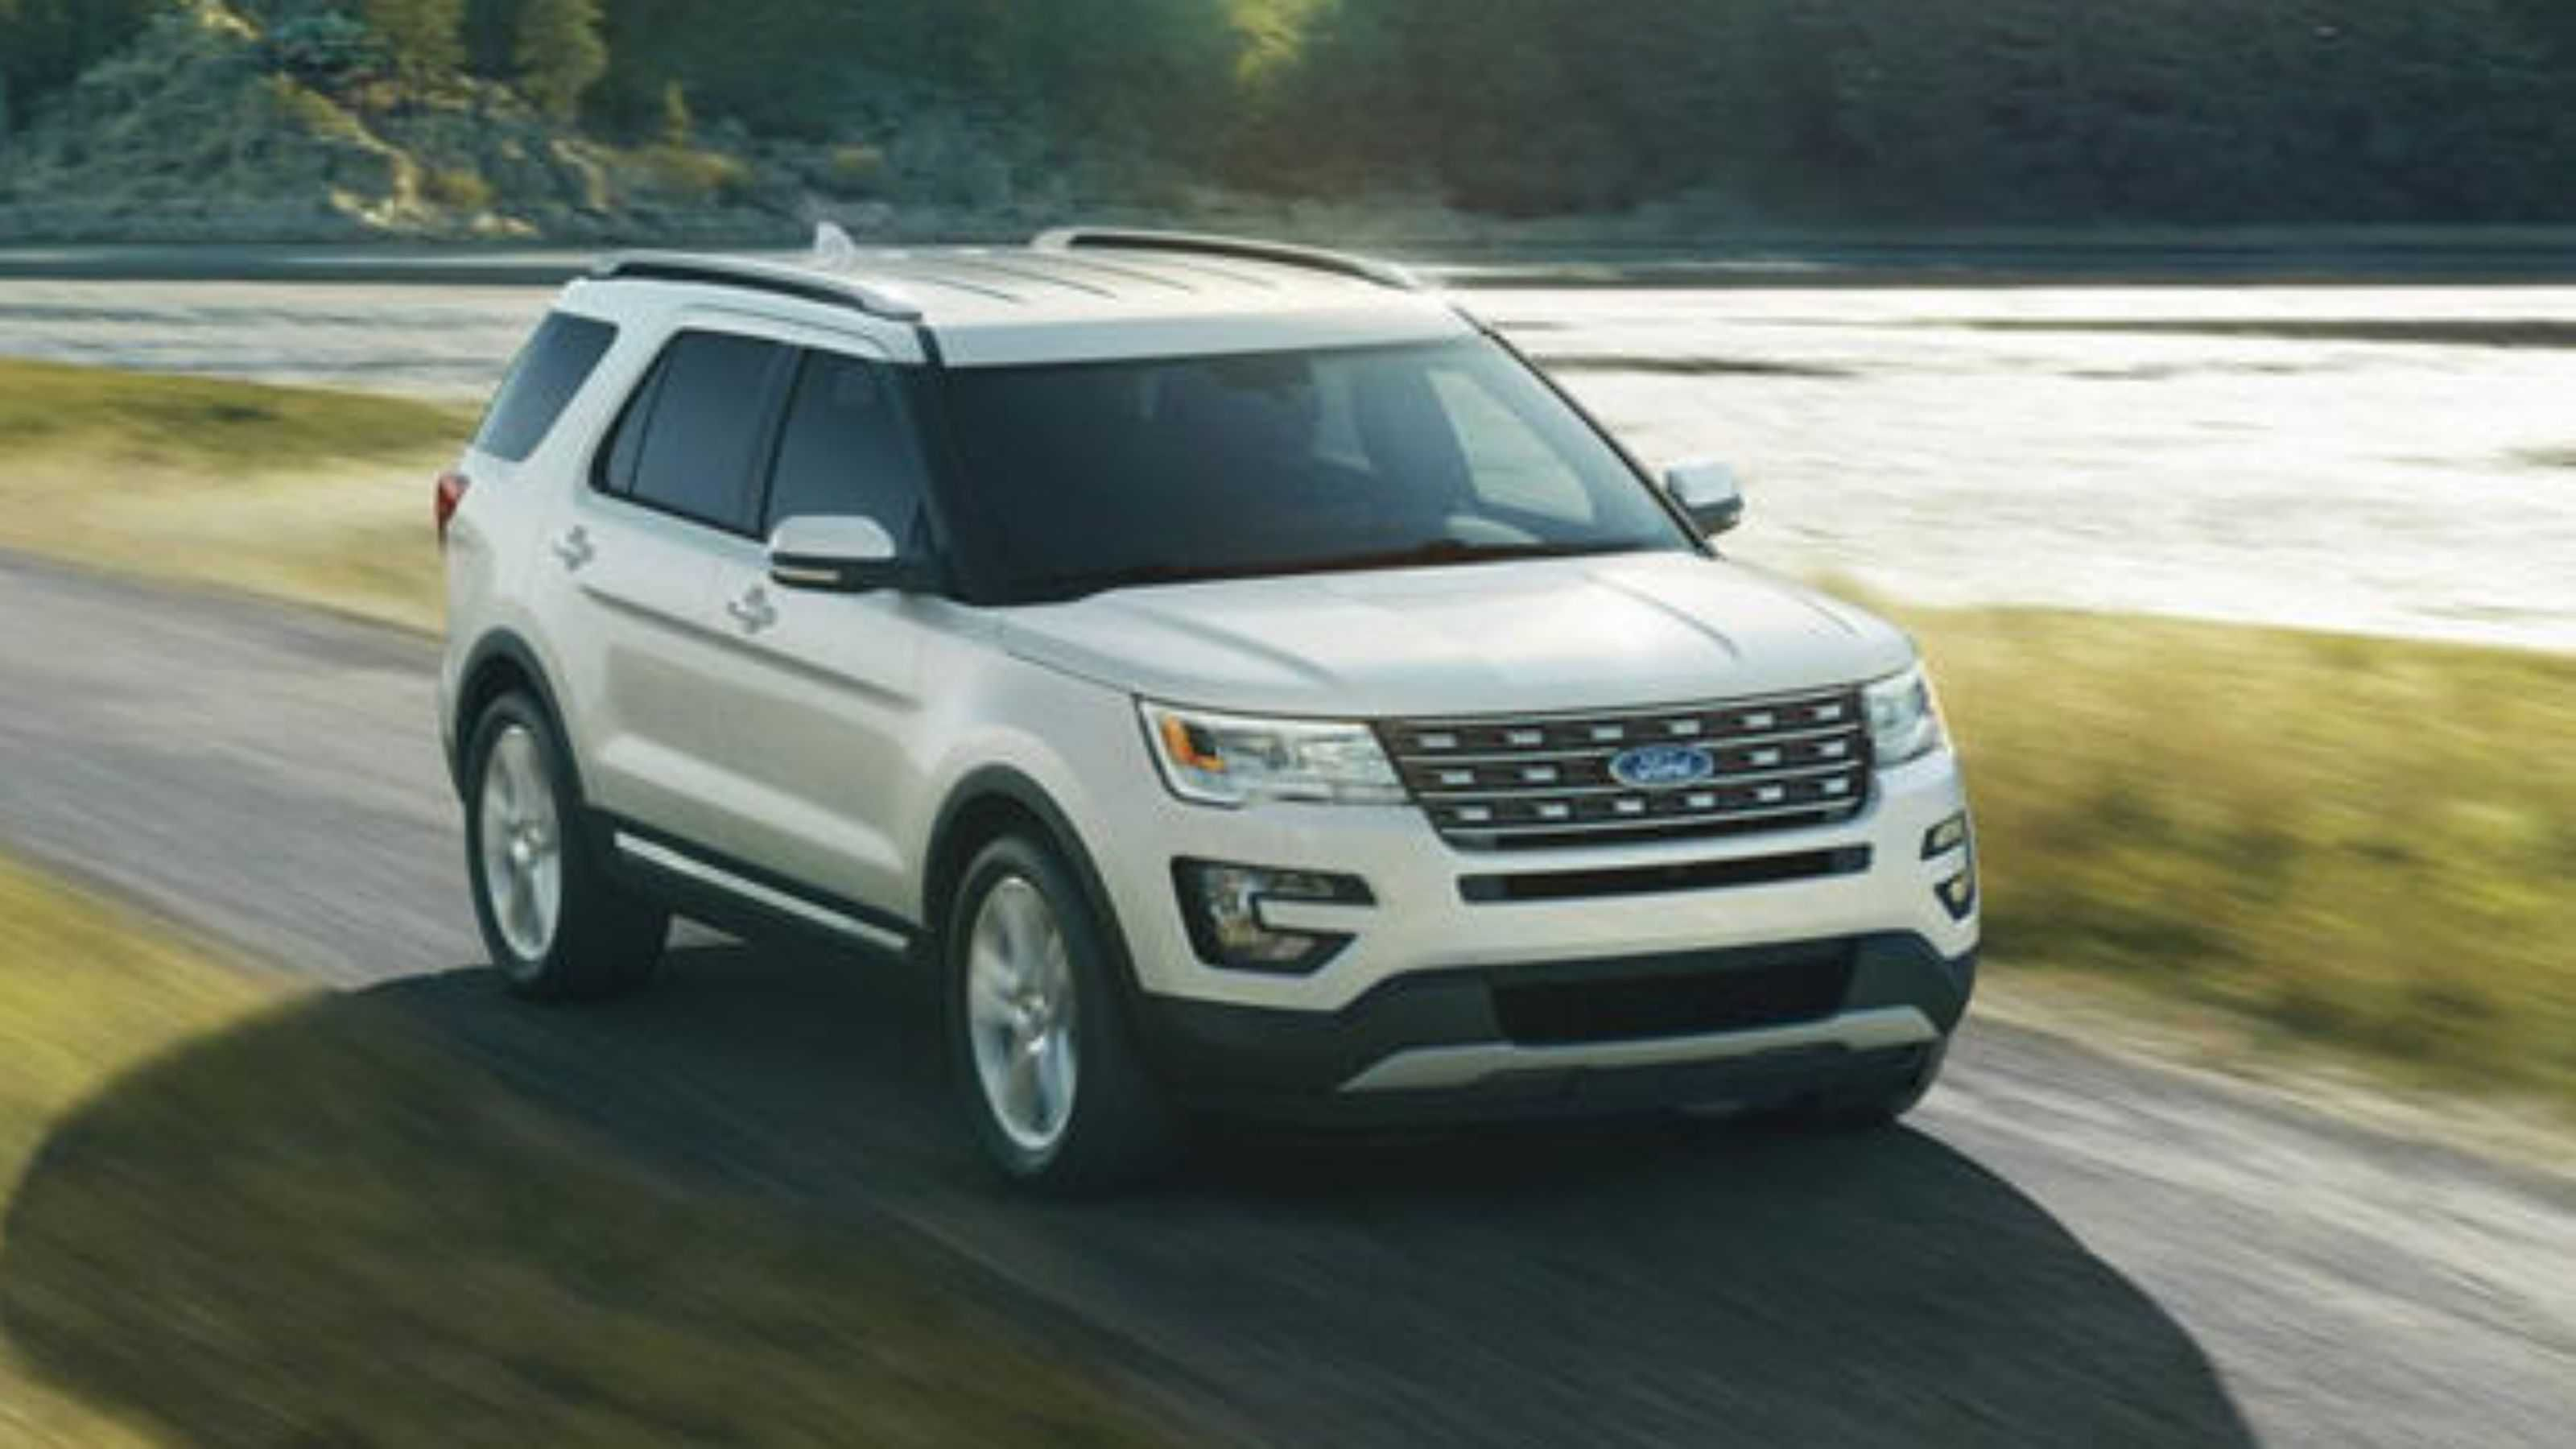 2018 ford explorer engine performance the new 2018 ford explorer will soon be launched on the market by the company ford